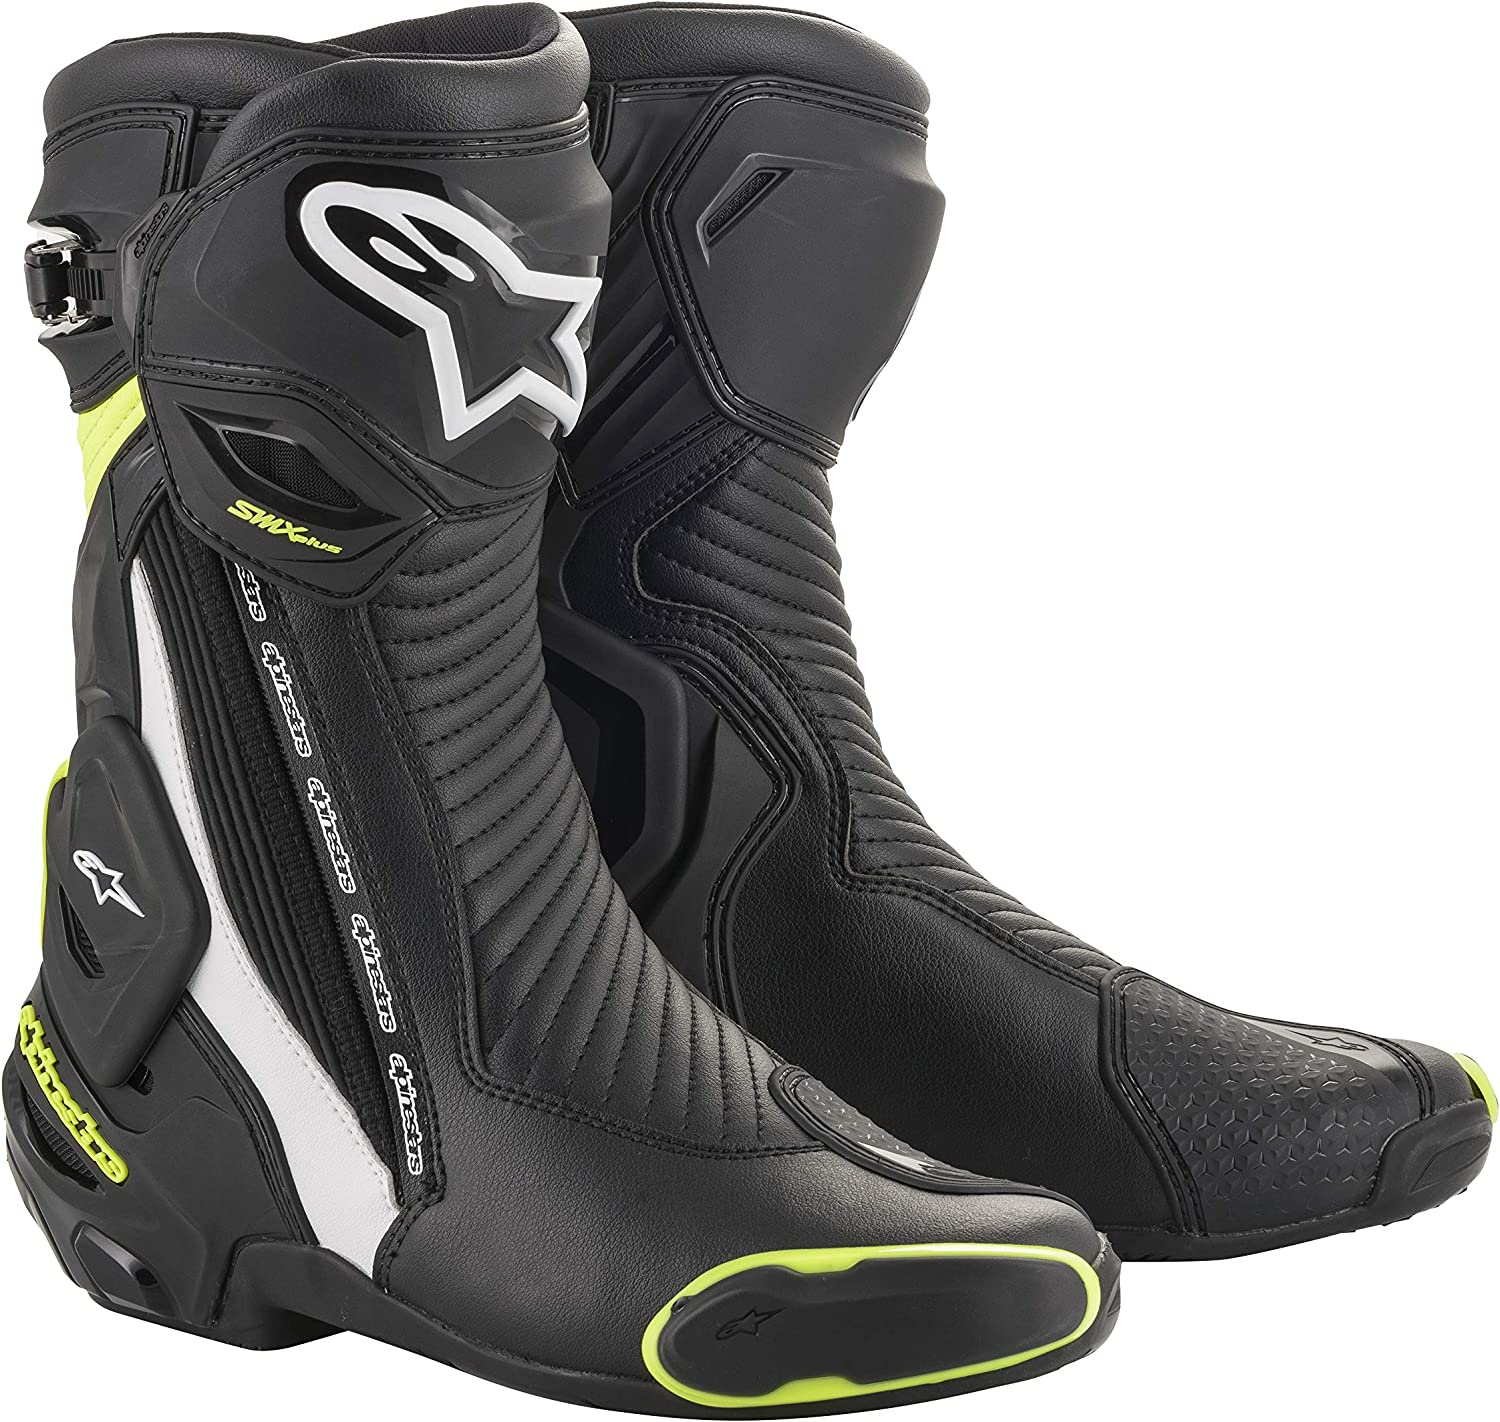 Alpinestars Now free shipping Men's SMX Plus V2 cheap Black Riding Motorcycle Whit Boot